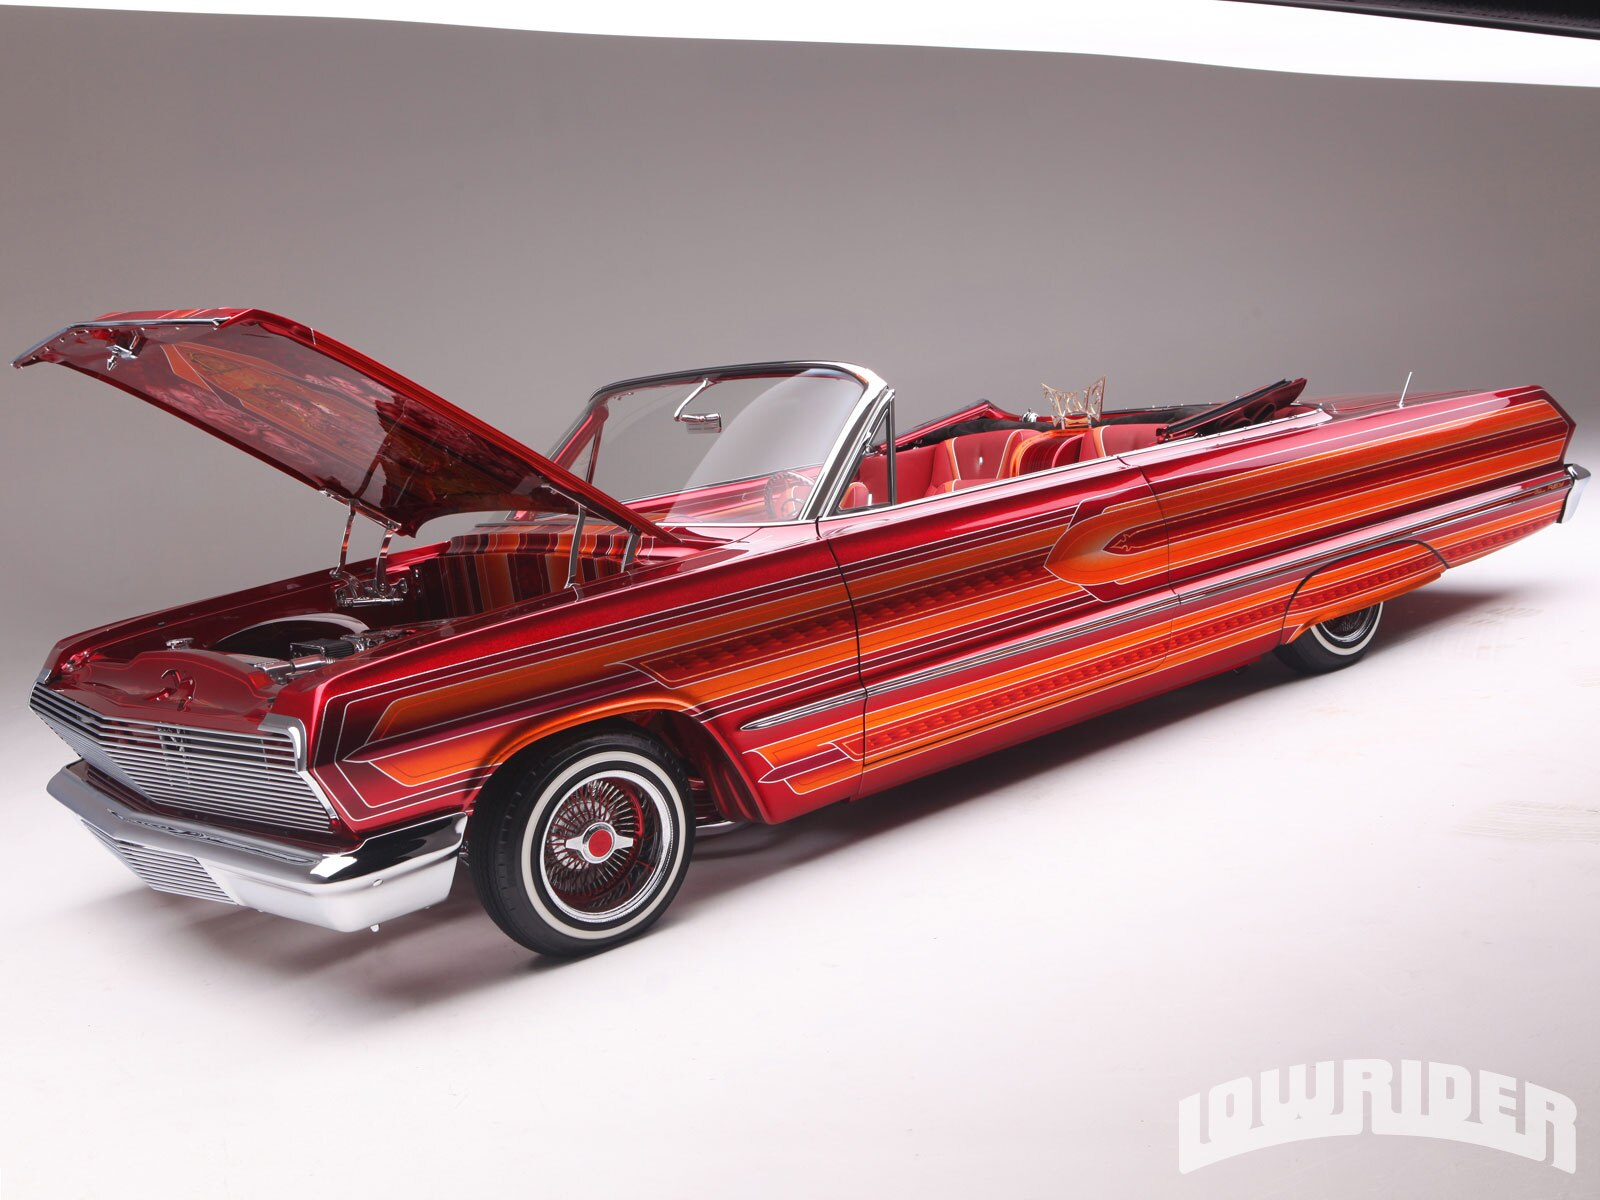 1207-lrmp-20-o-1963-chevrolet-impala-impala-driver-side-front-view1